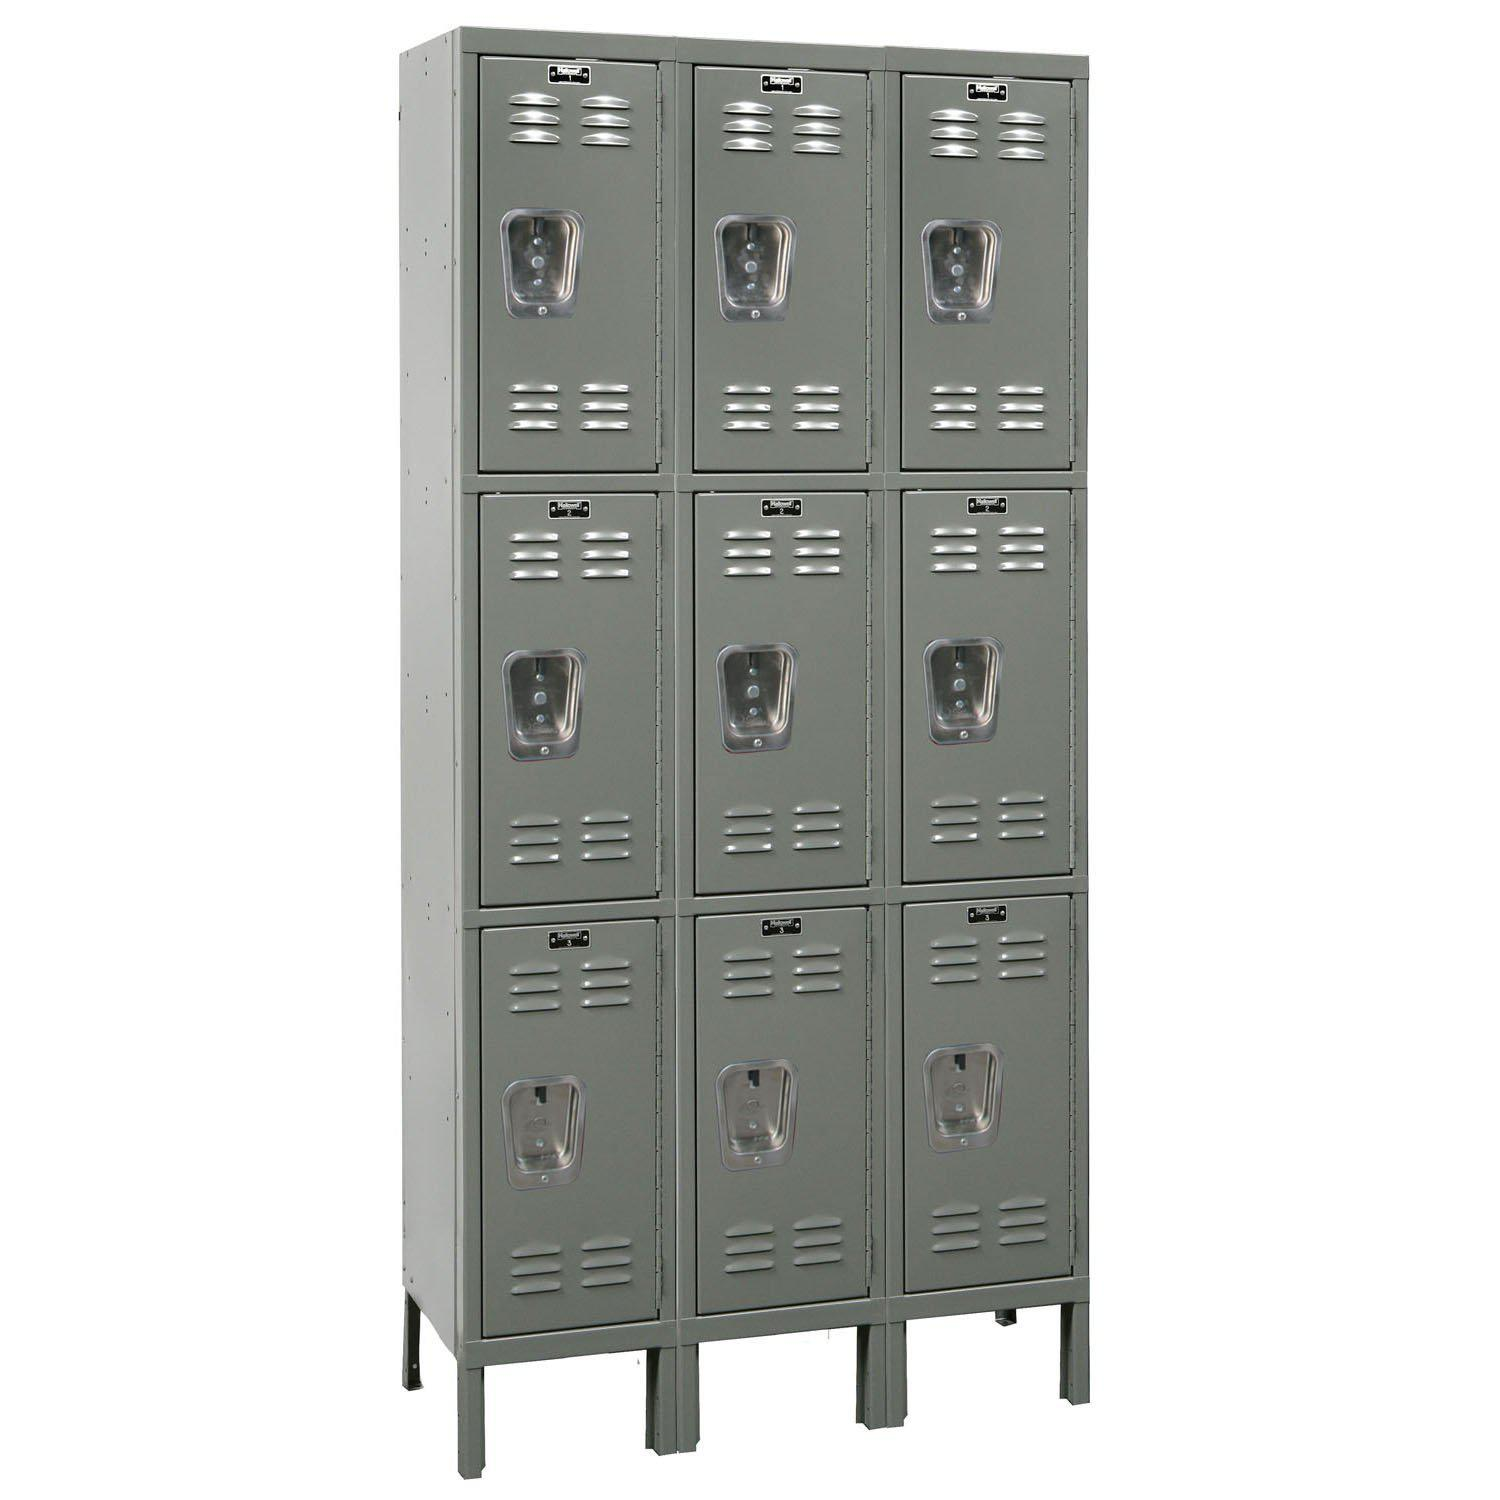 "Hallowell Premium Wardrobe Lockers, Triple-Tier, Unassembled-Lockers-12""-Deep, 3-Wide-12"" x 12"" x 24""-Hallowell Gray"